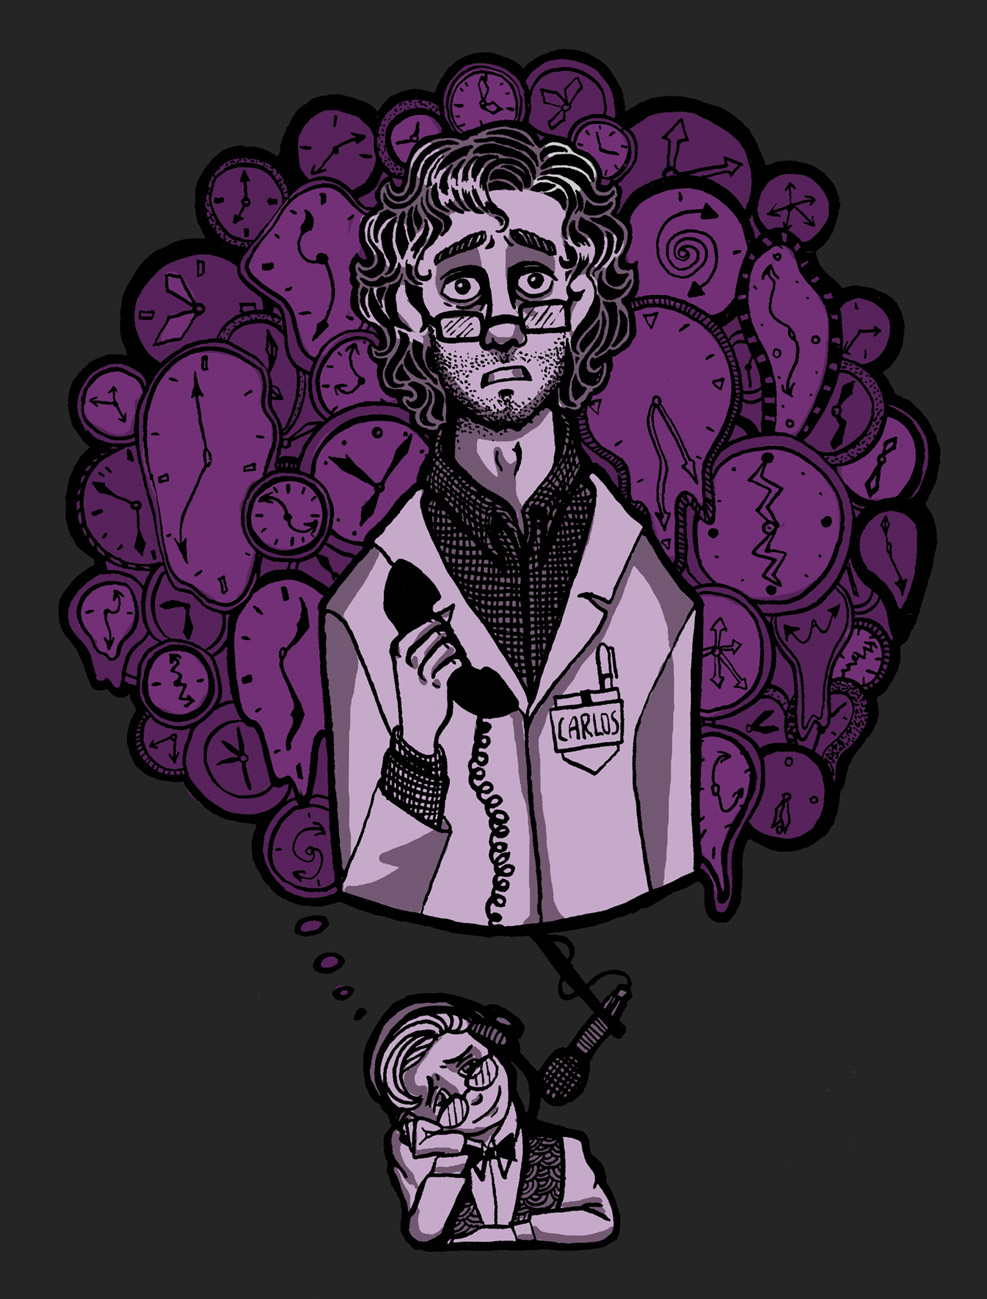 Drawing of curly-haired man (Carlos) with stubble holding a telephone receiver and looking aghast, superimposed over a bunch of purple melting clocks. The curly cord of the receiver dangles down, where the cord turns into a large microphone. A man, head tilted on hand (Cecil), waits before the microphone wearing headphones. He wears glasses, a bowtie, a button-down shirt, and a vest.